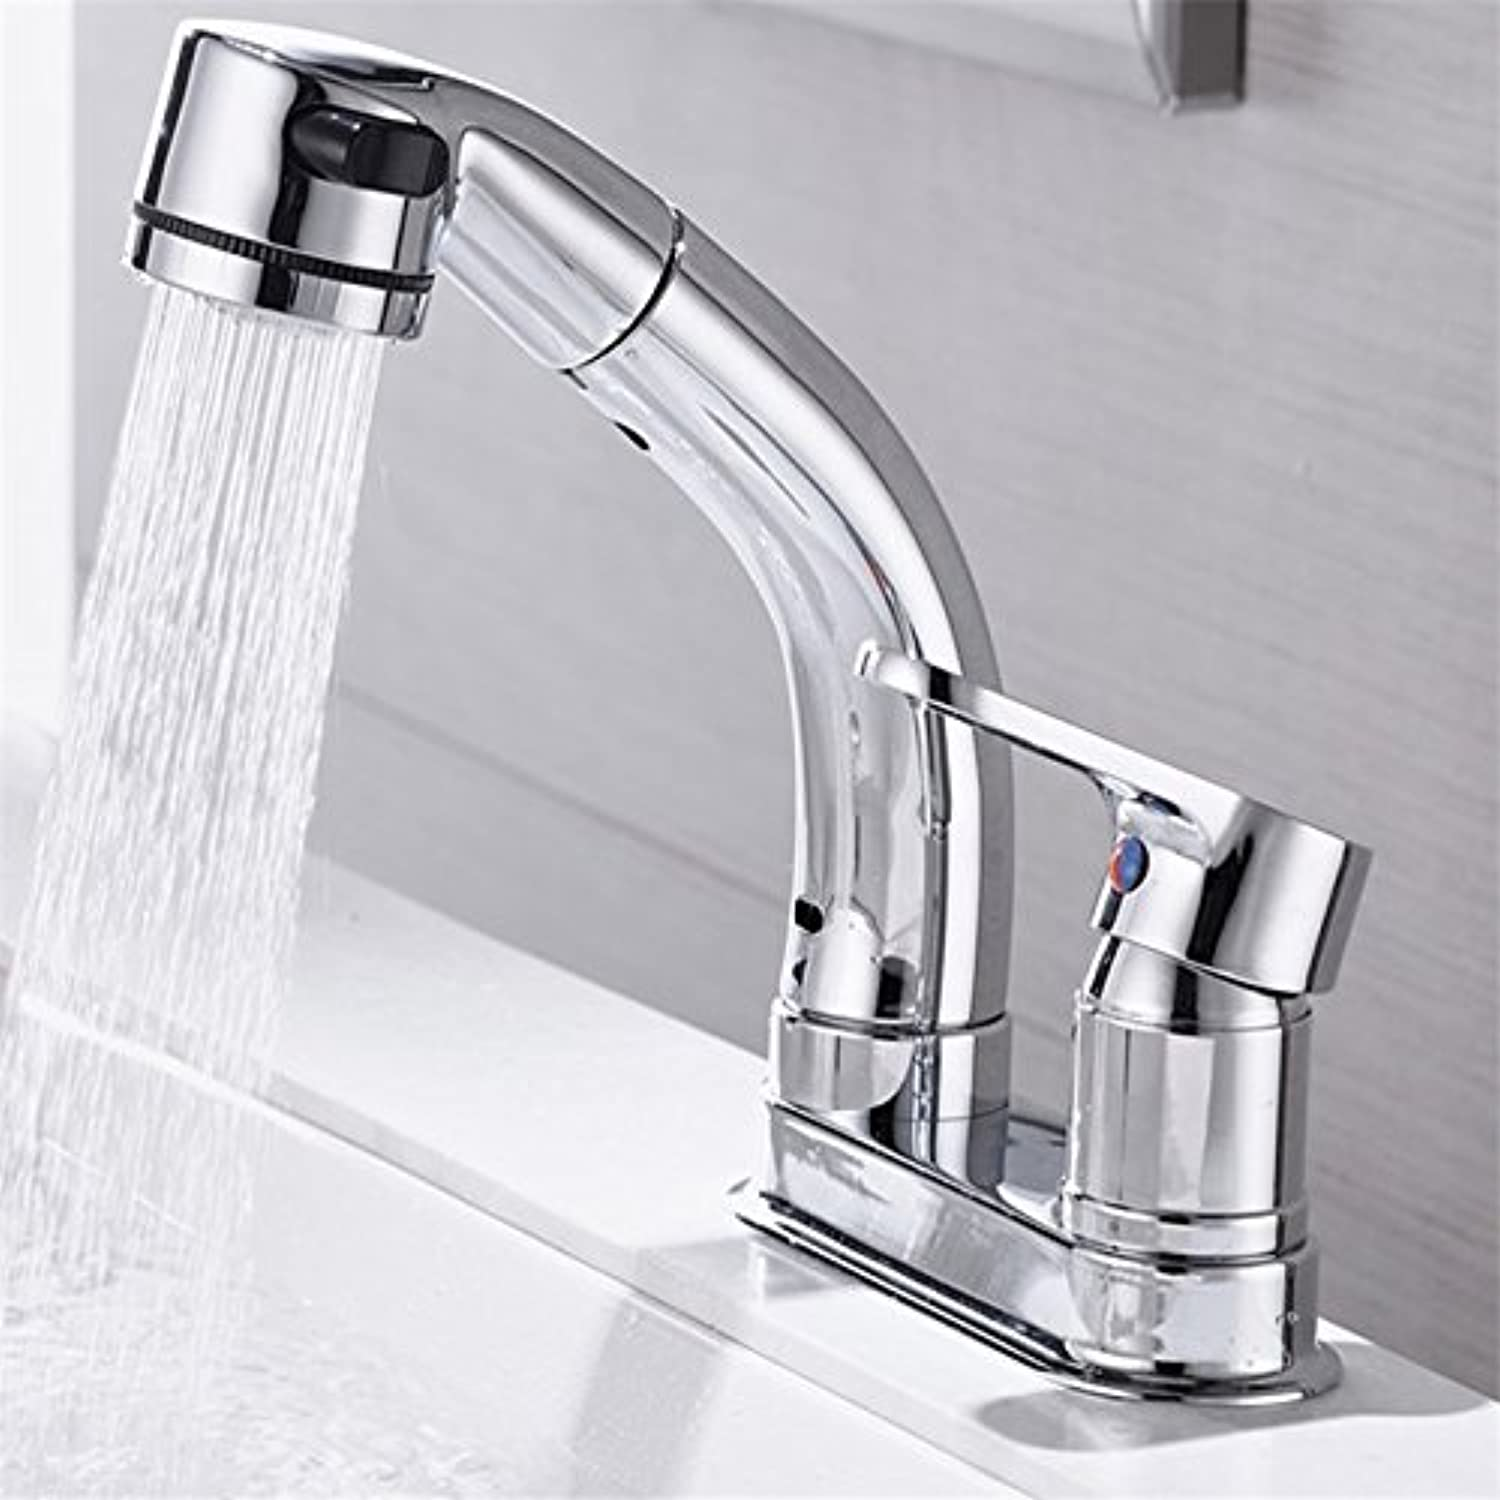 Commercial Bathroom Sink Taps Janitorial & Sanitation Supplies Gyps Faucet Single Lever Washbasin Mixer Tap Copper Wash Basin Faucet Colour Warm and Cold Water Bathroom Tap White